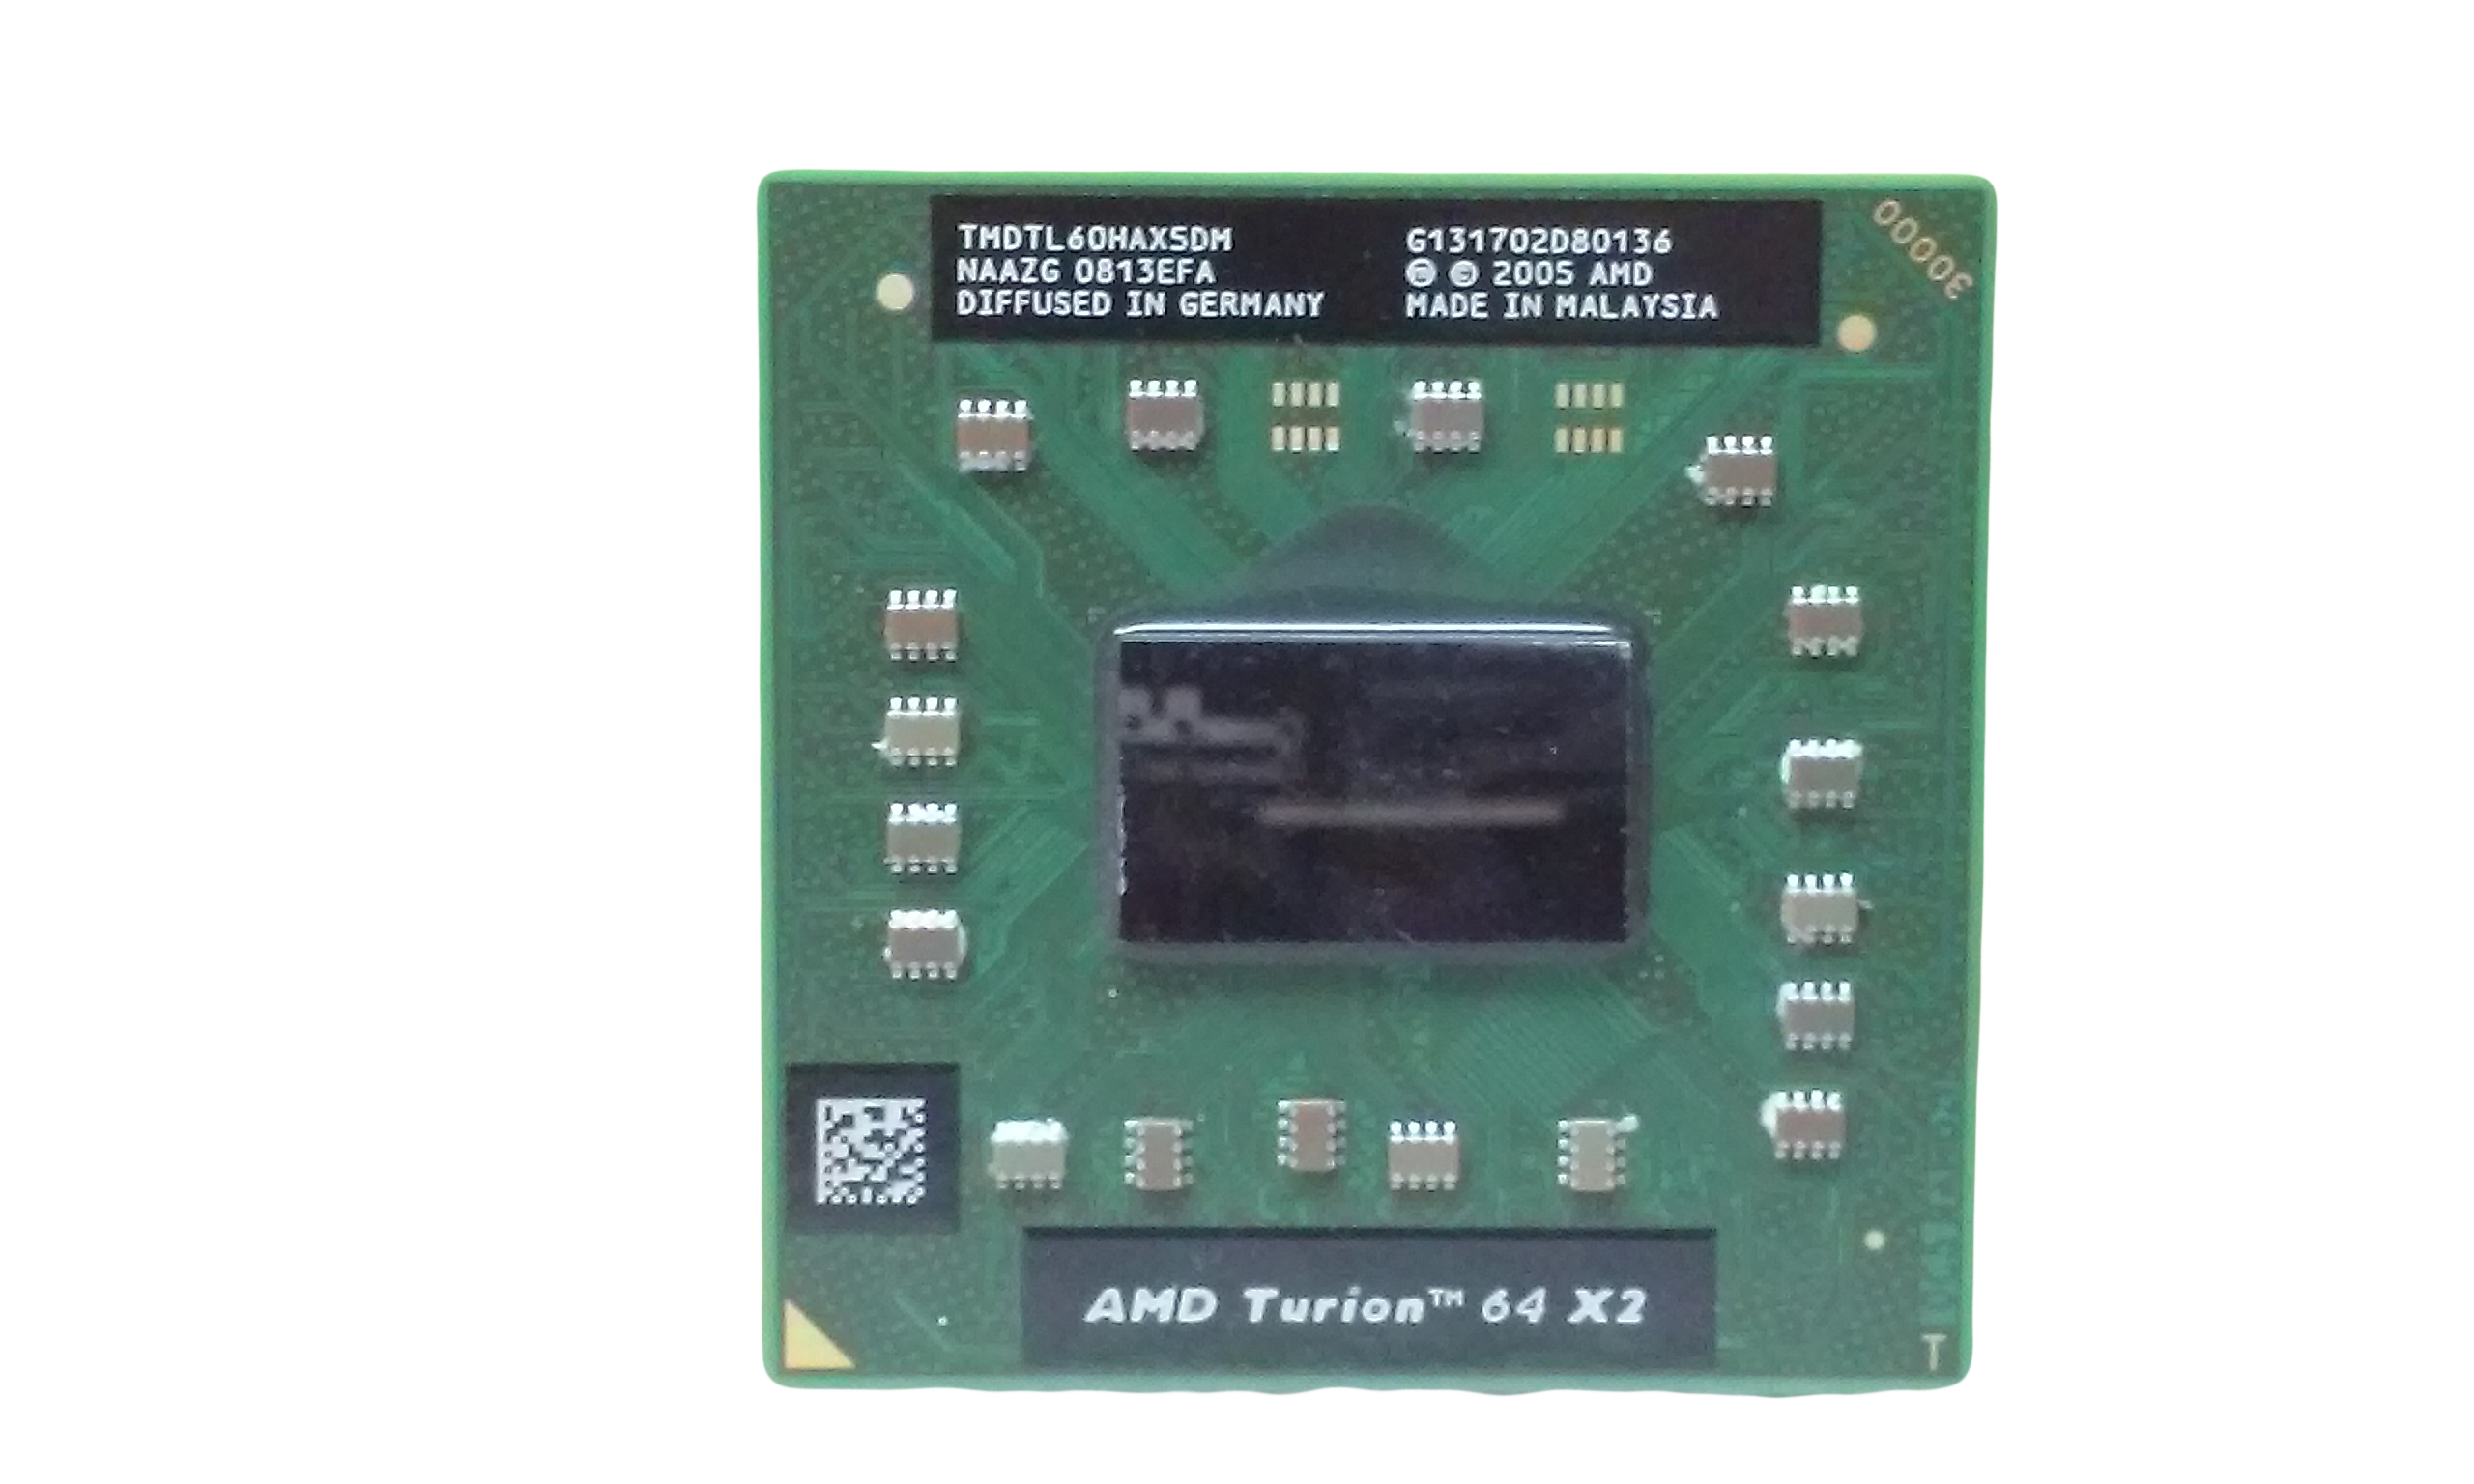 USED AMD TMDTL60HAX5DM  TURION 64 X2 MOBILE  TL-60 TESTED AND WORKING